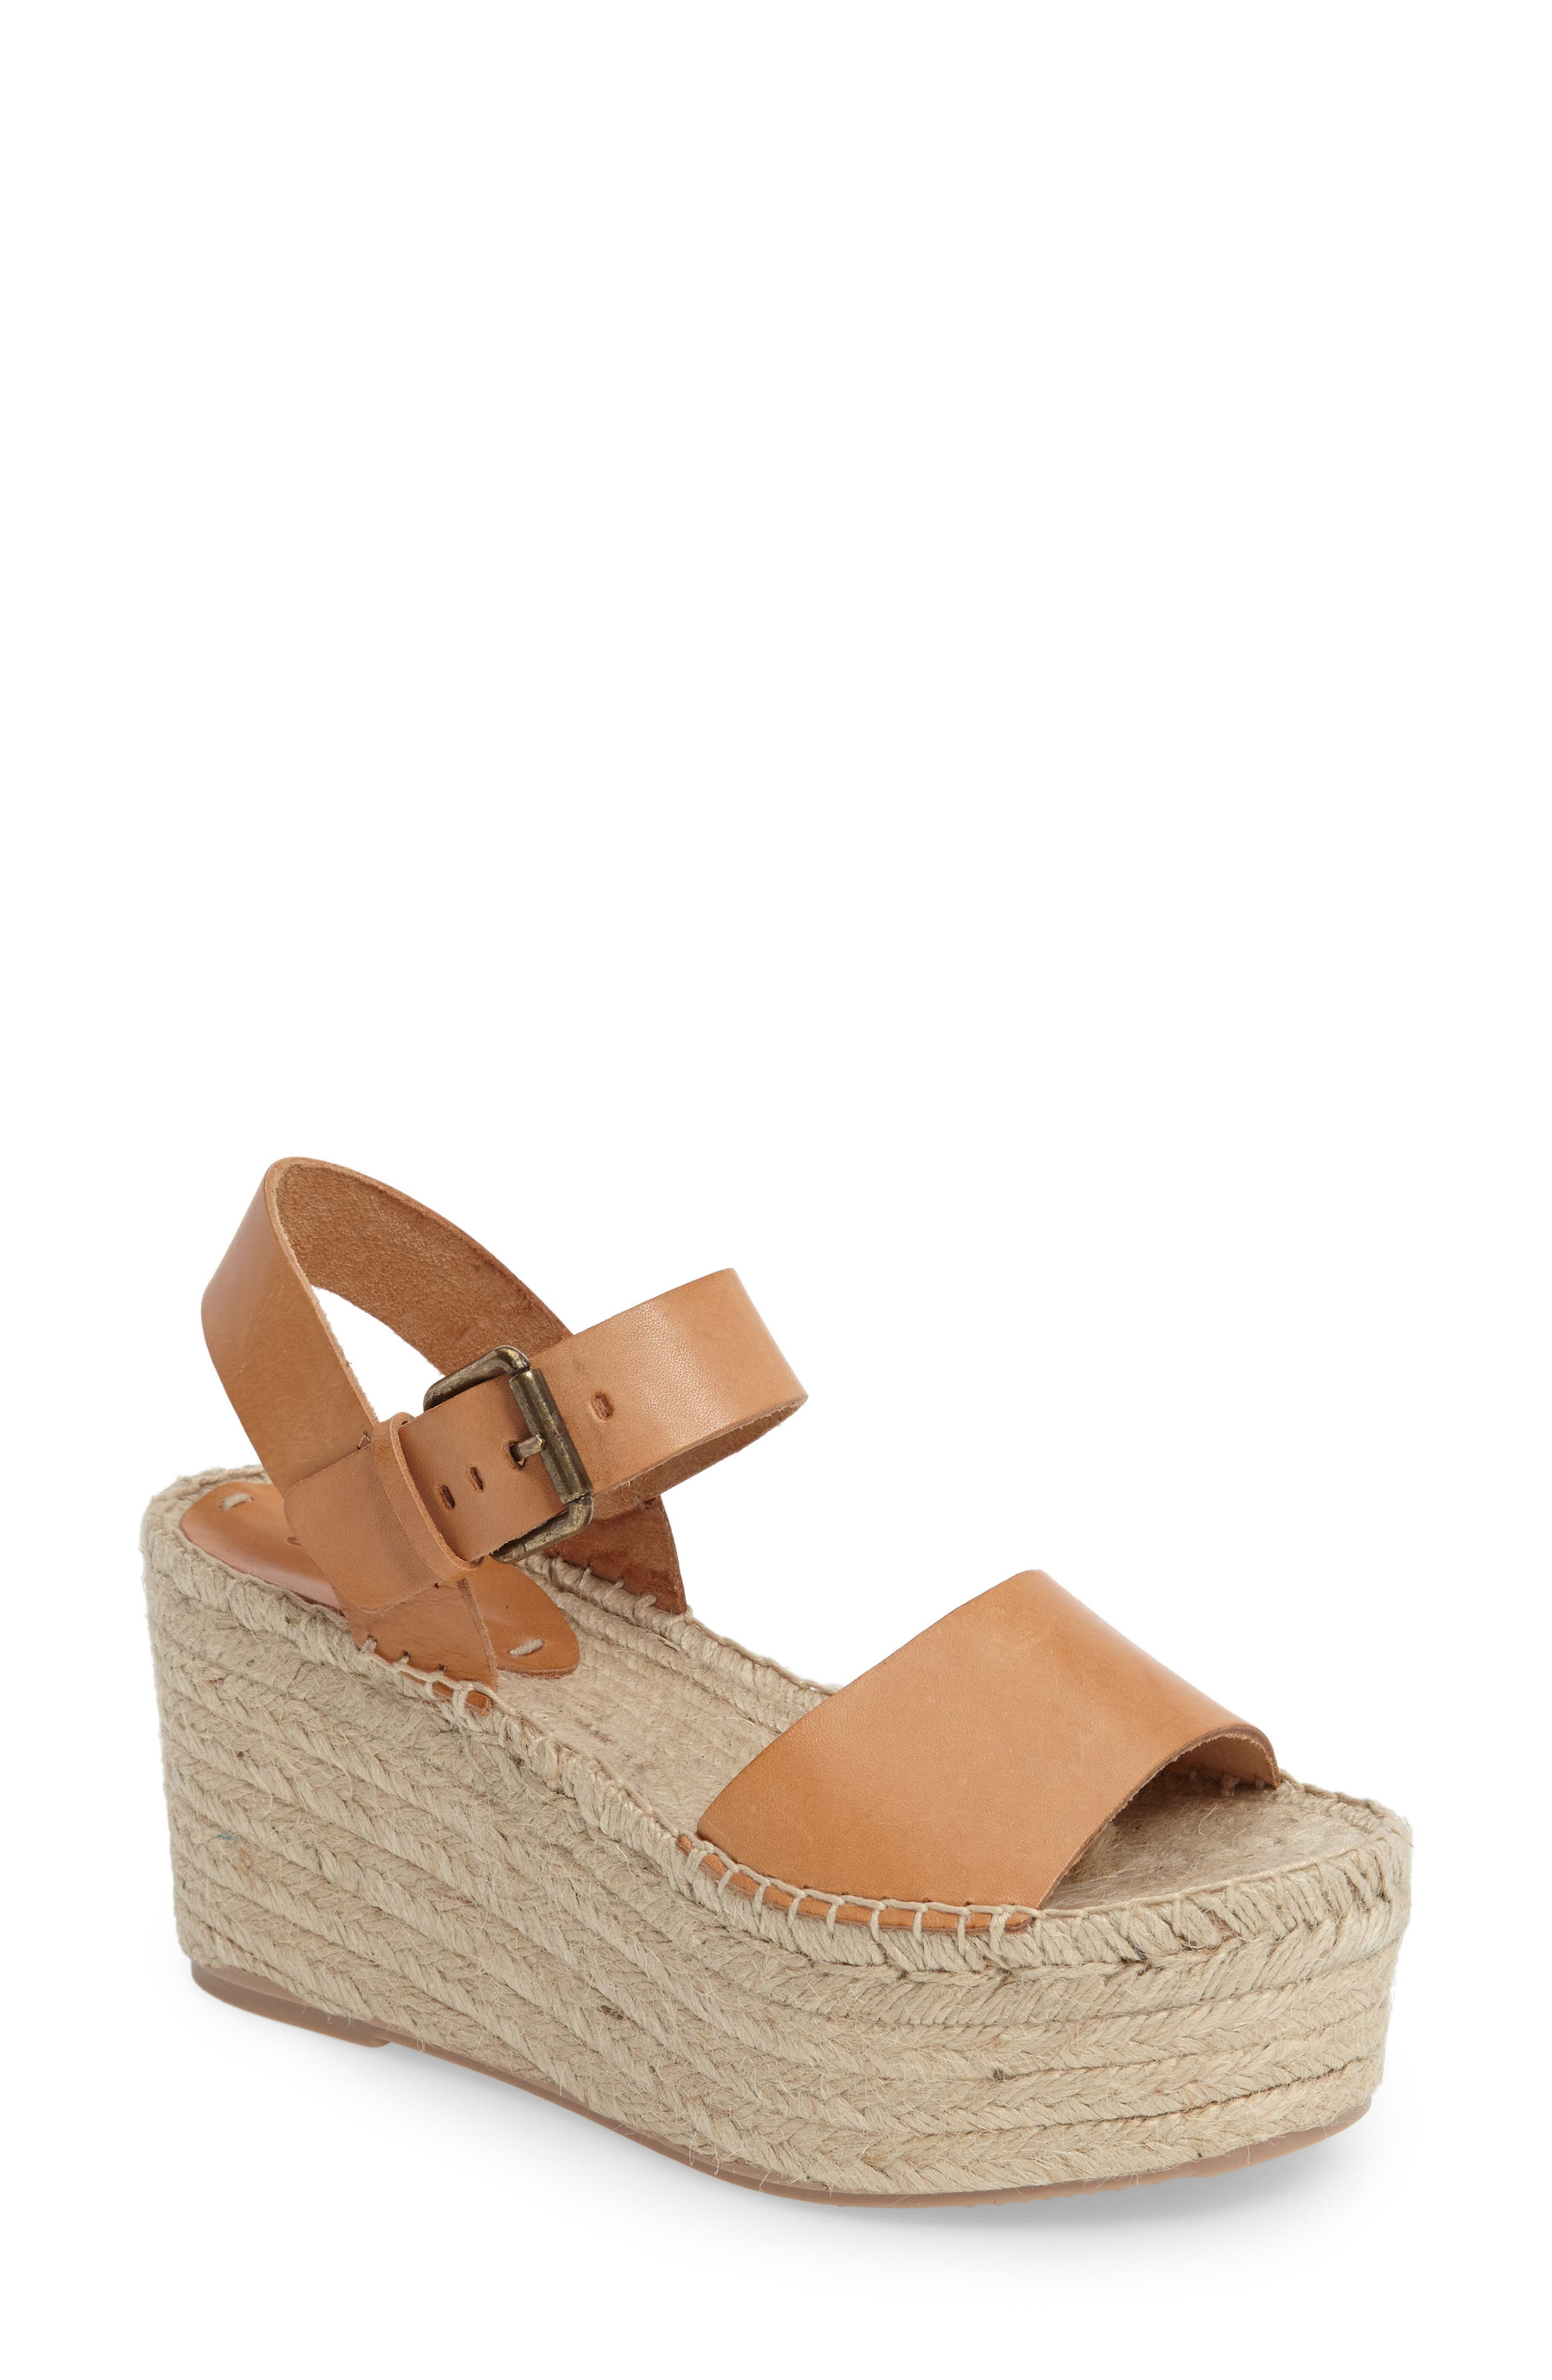 Main Image - Soludos Platform Wedge Sandal (Women)